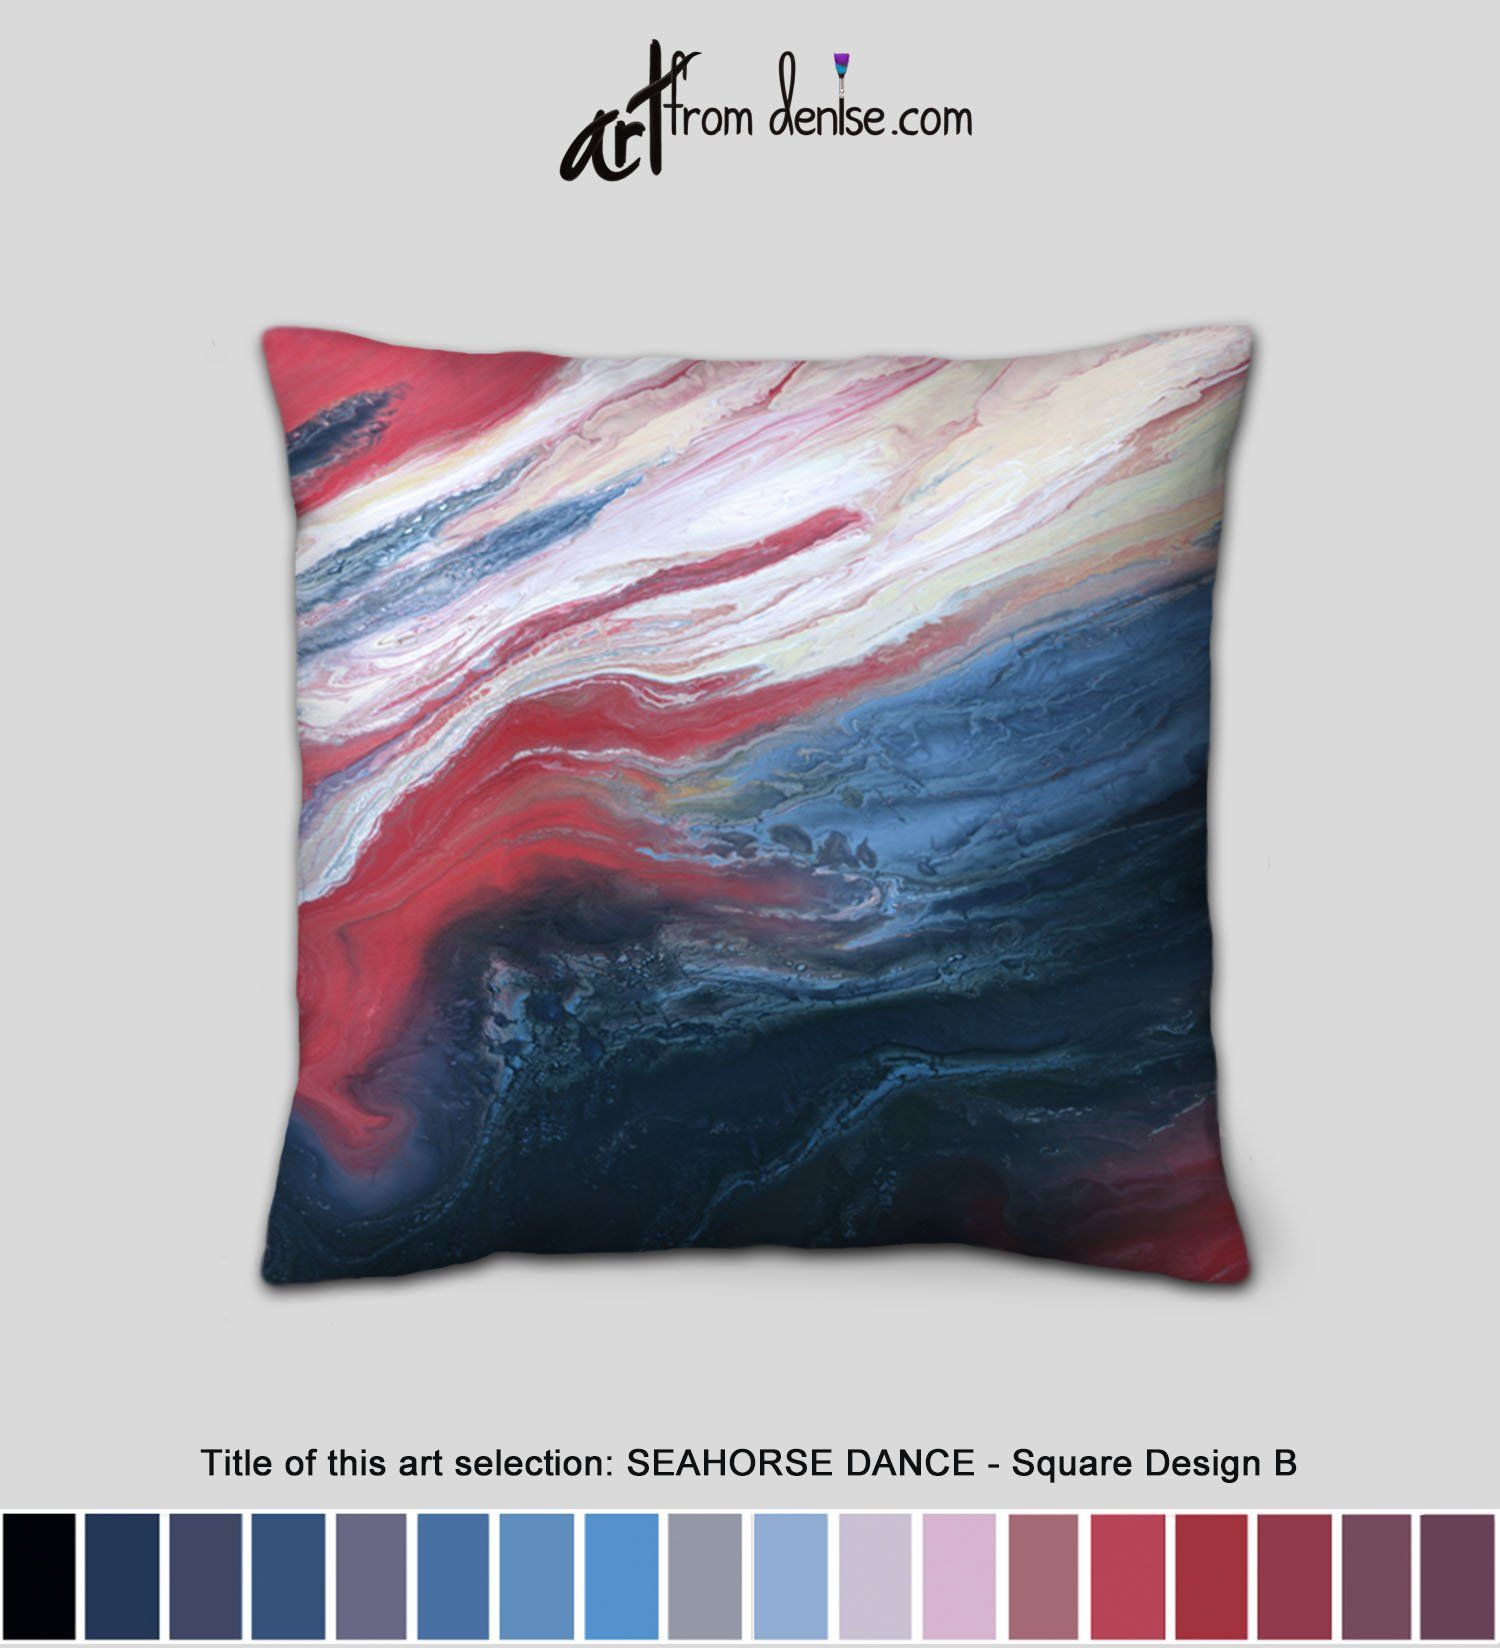 Navy Throw Pillows For Couch Cushions Red White Denim Blue Etsy In 2020 Navy Throw Pillows Blue Sofa Pillows Throw Pillows